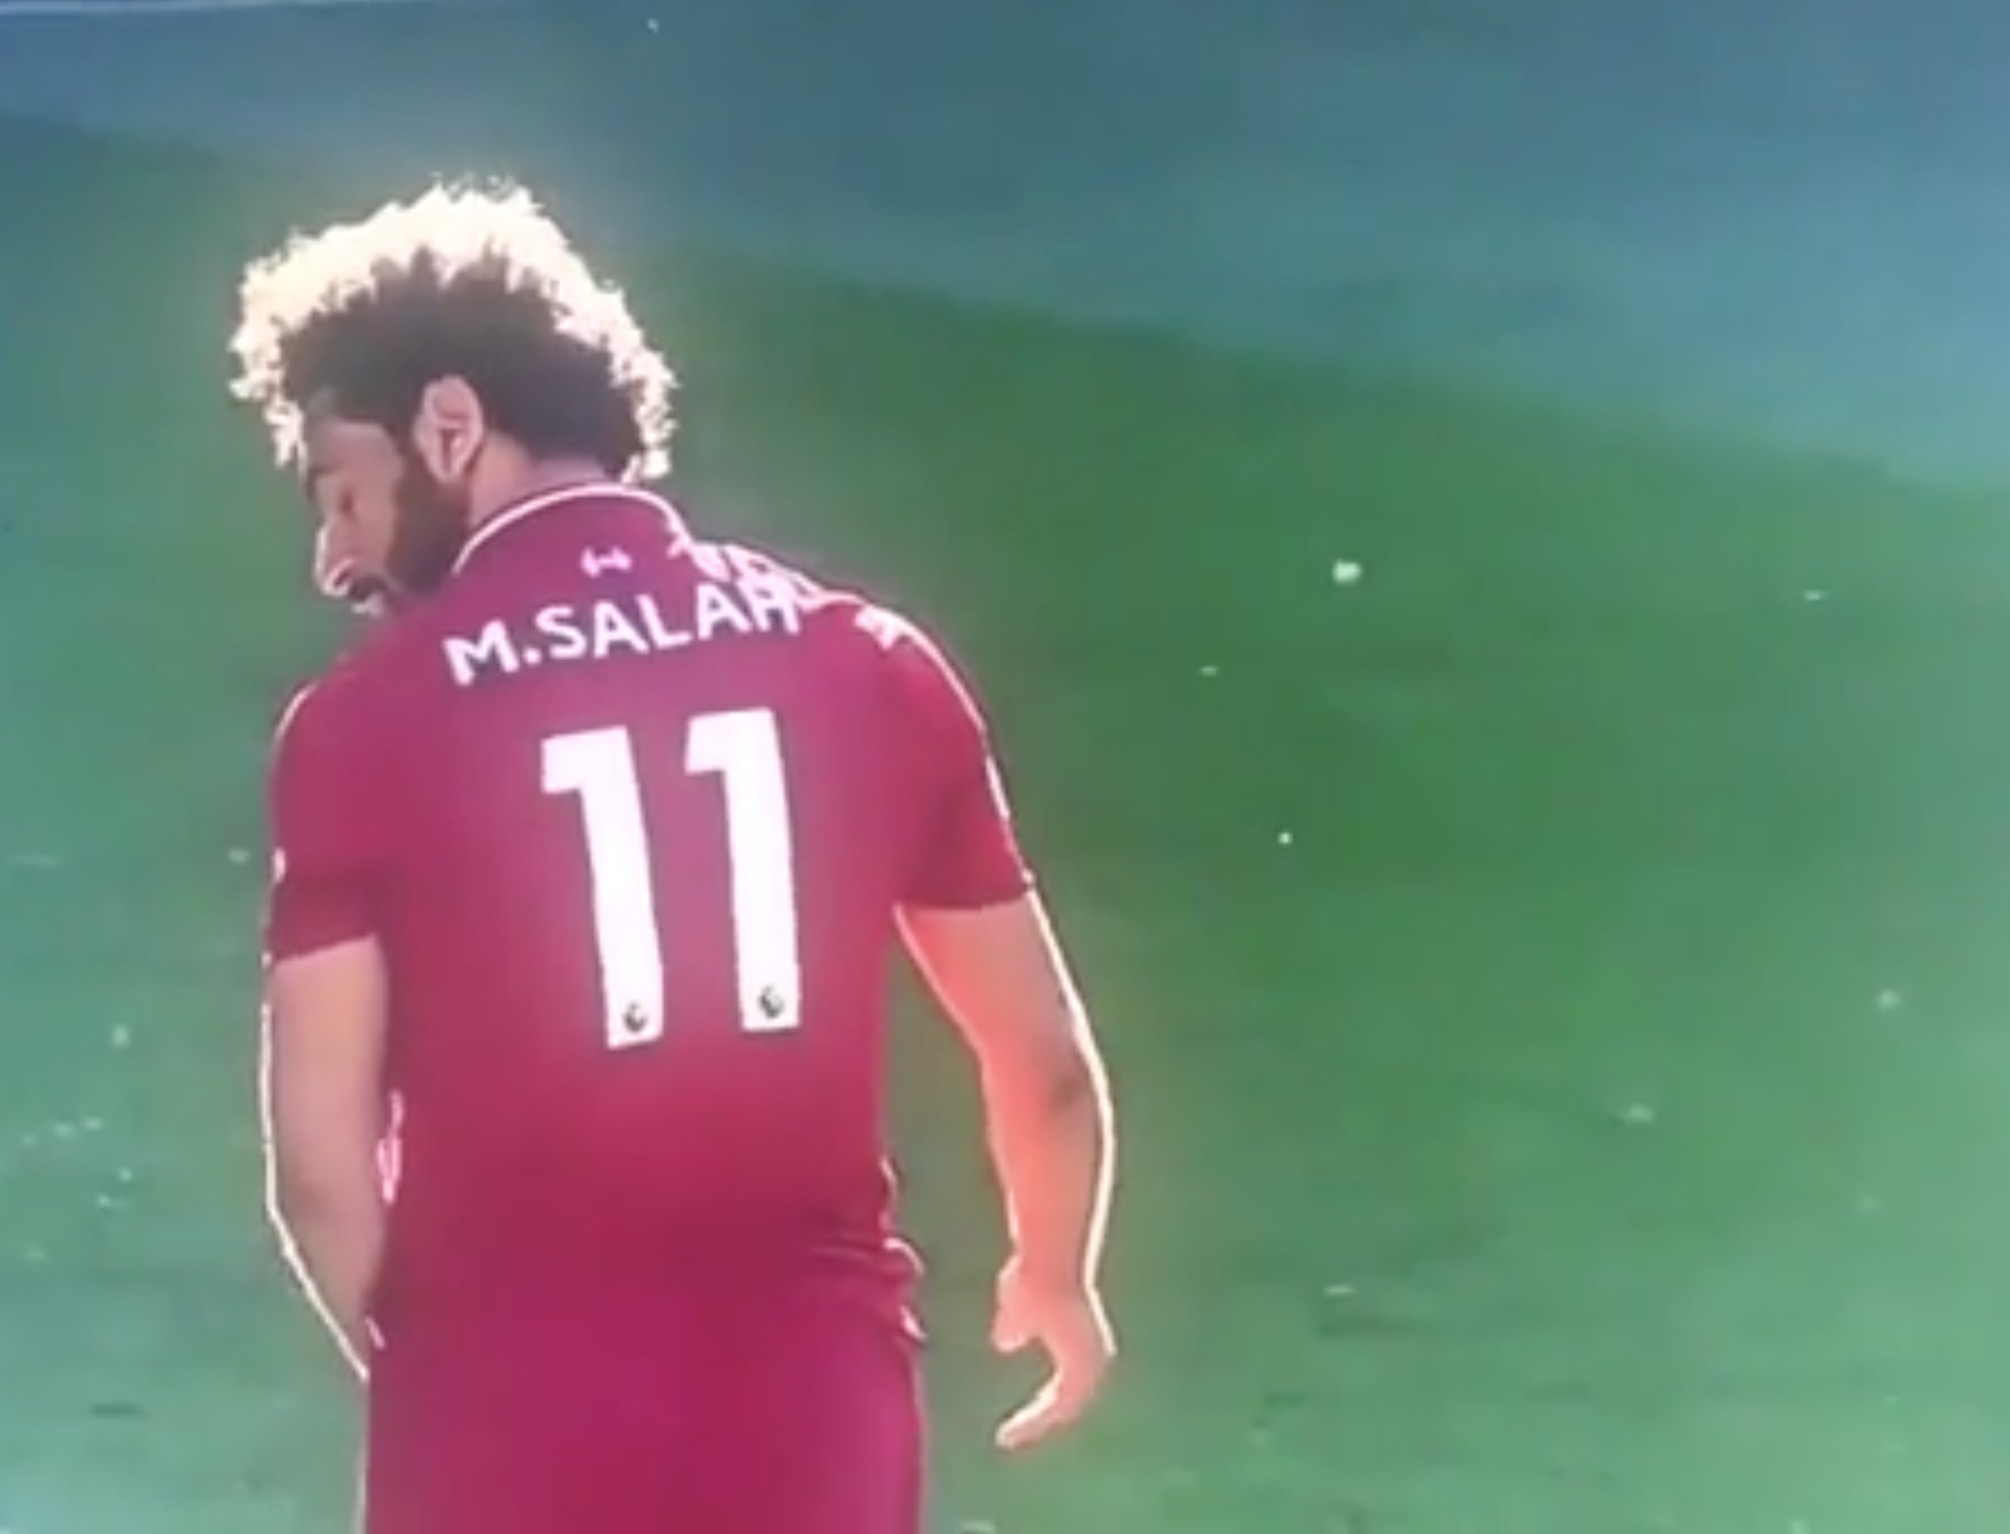 Mo Salah disappointed after Milner takes the ball away from him